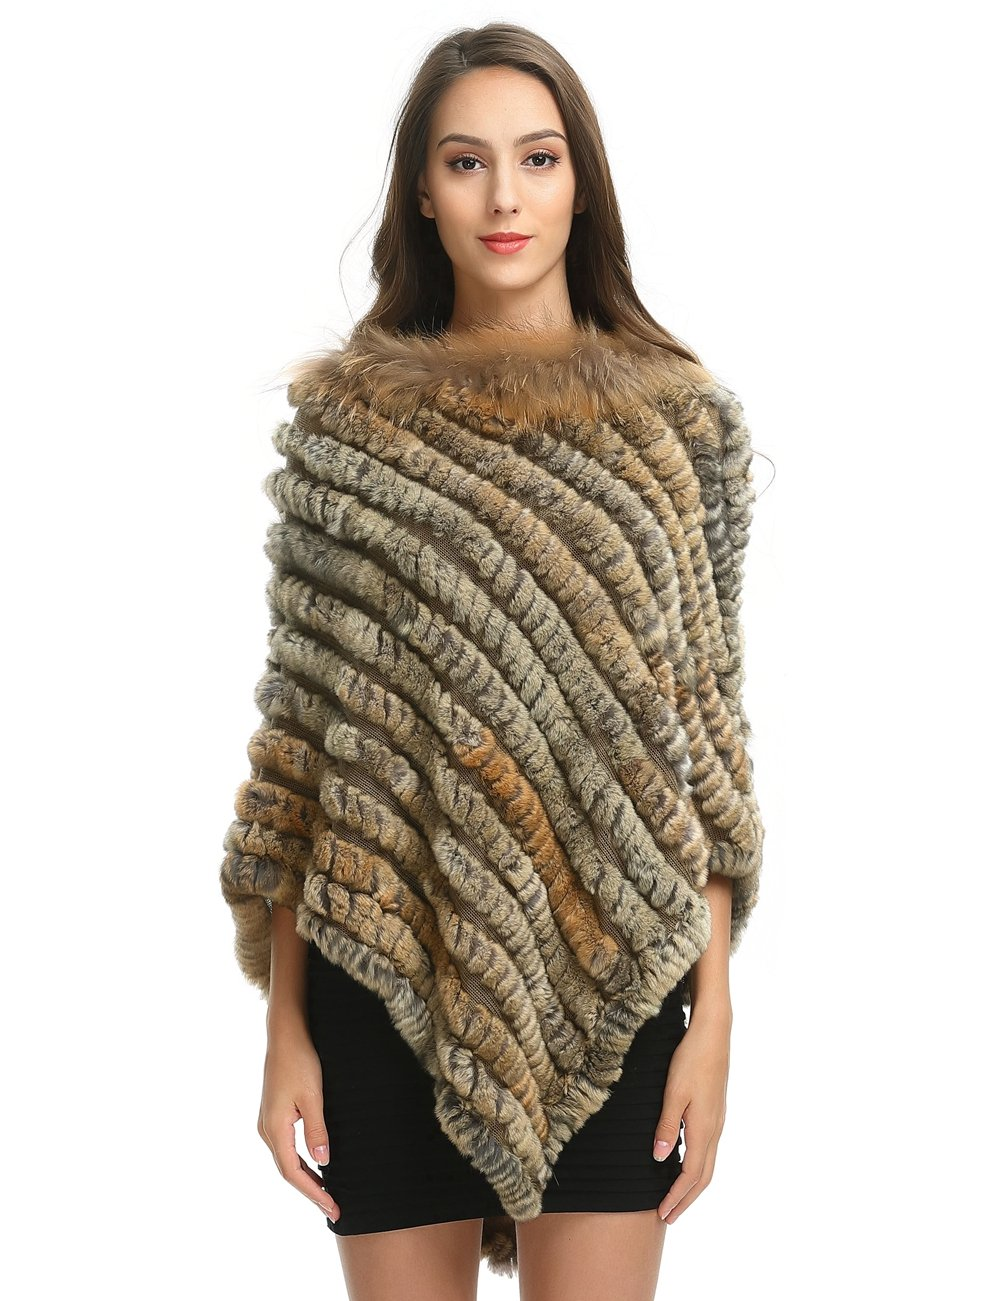 Ferand Women's Oversized Real Rex Rabbit Fur Poncho with Raccoon Fur Collar, Soft and Warm, Ideal for Winter, Natural Brown(Bigger Style)